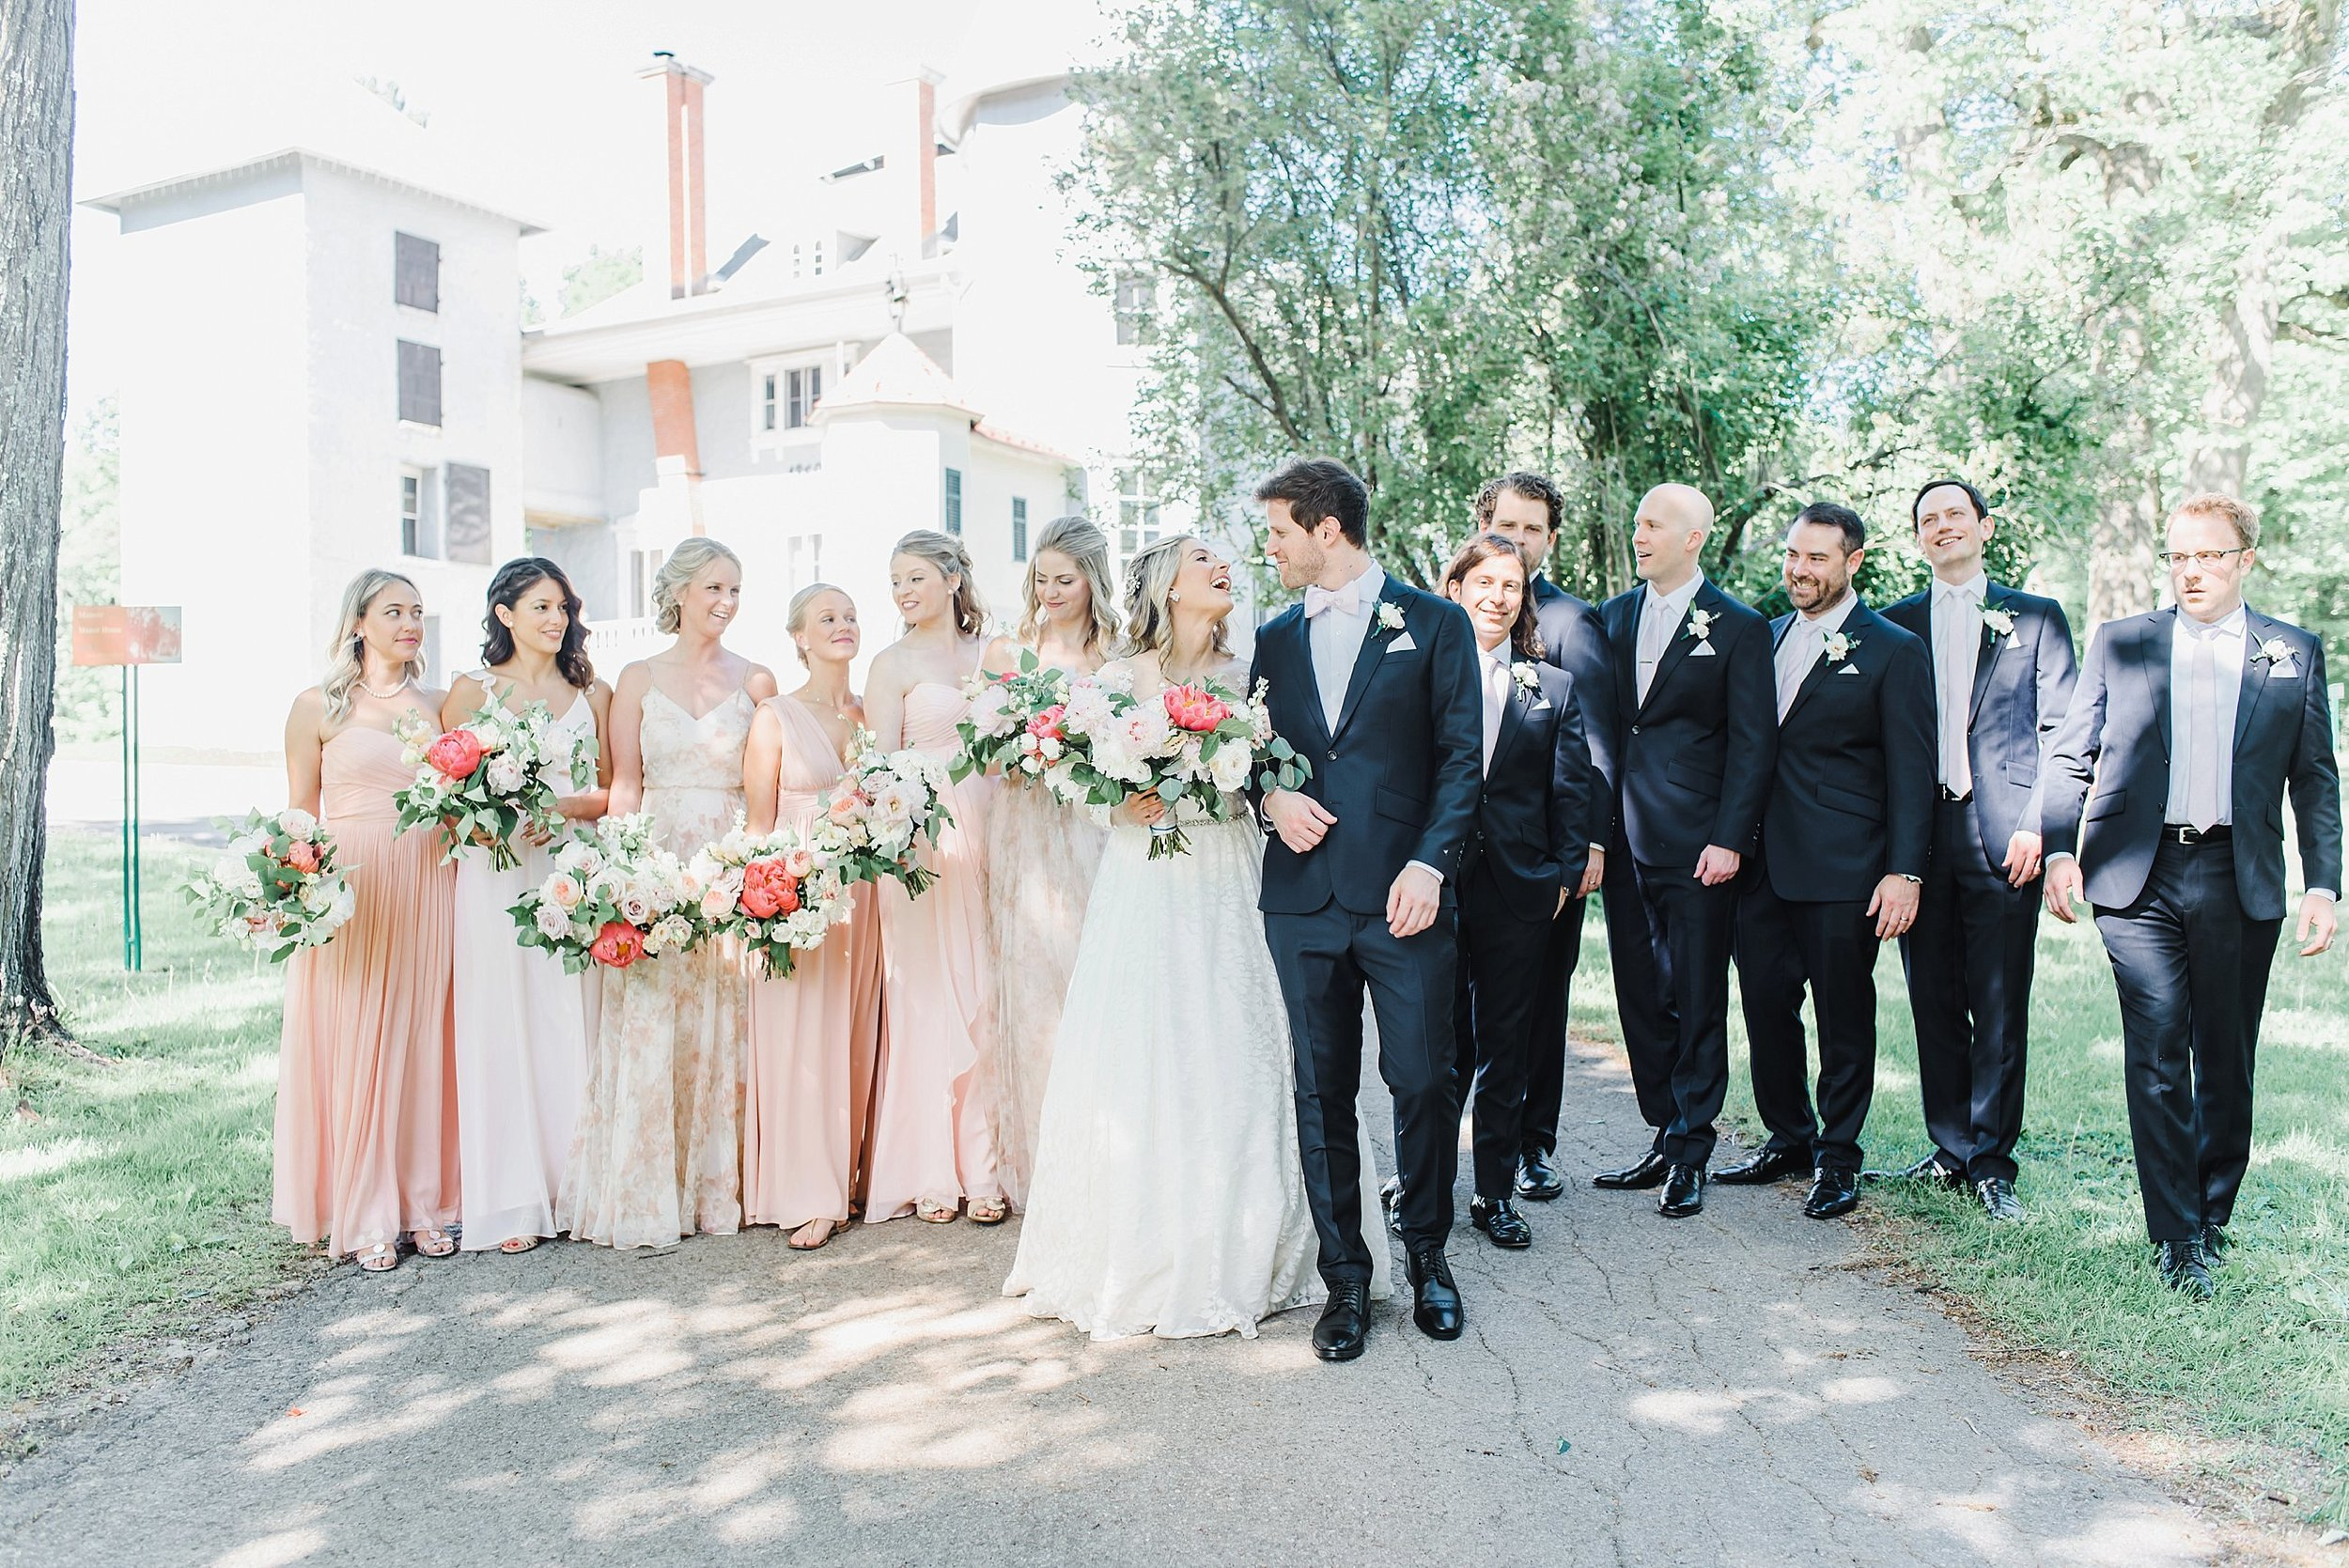 light airy indie fine art ottawa wedding photographer | Ali and Batoul Photography_0076.jpg